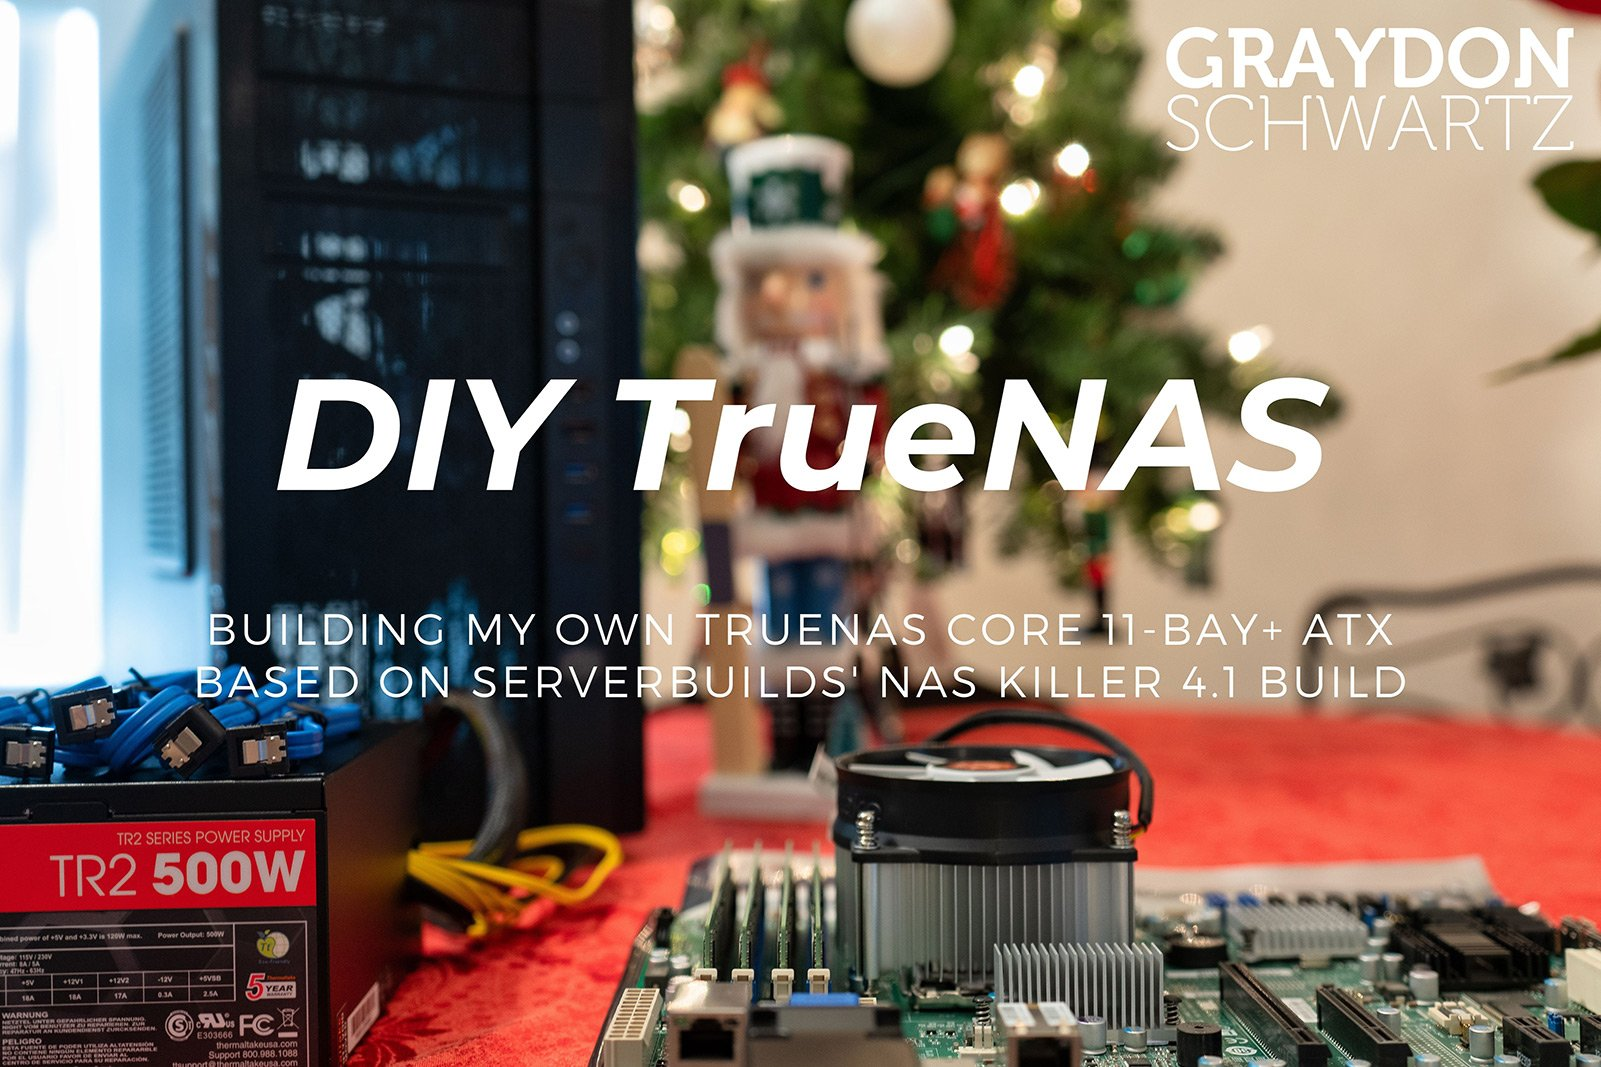 Building My Own TrueNAS Core 11-bay+ ATX Based on ServerBuilds' NAS Killer 4.1 Build